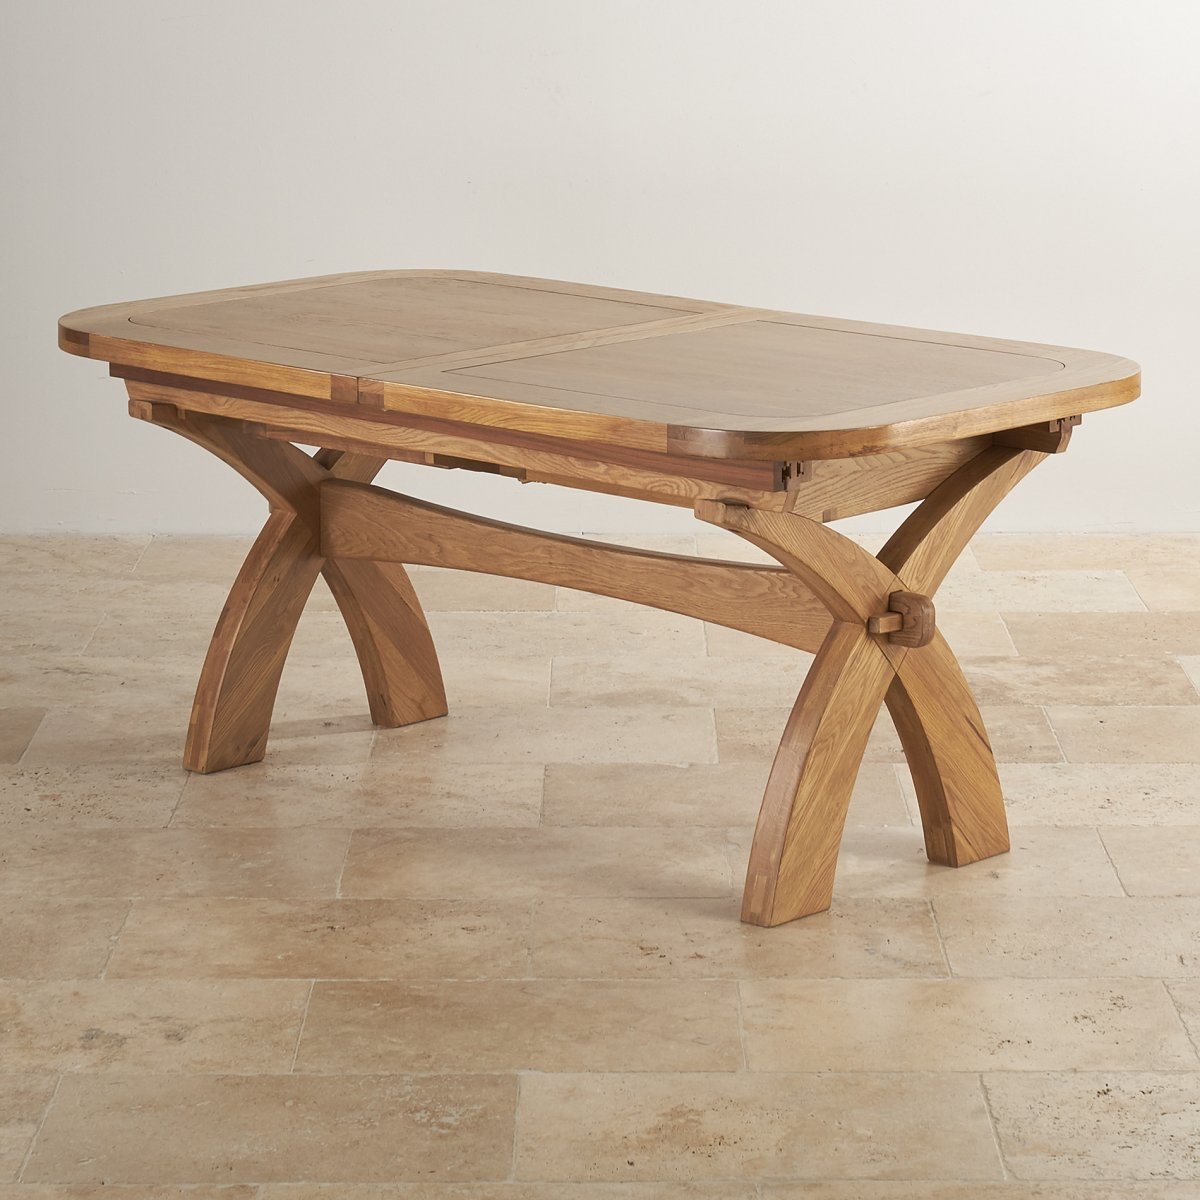 Hercules 6ft Extending Dining Table in Oak Oak Furniture  : crossley 6ft x 3ft 3 natural solid oak extending crossed leg dining table 58e67fa28cd142902e6f8b3c9eb5ae065fdc3783fb356 from www.oakfurnitureland.co.uk size 1200 x 1200 jpeg 170kB